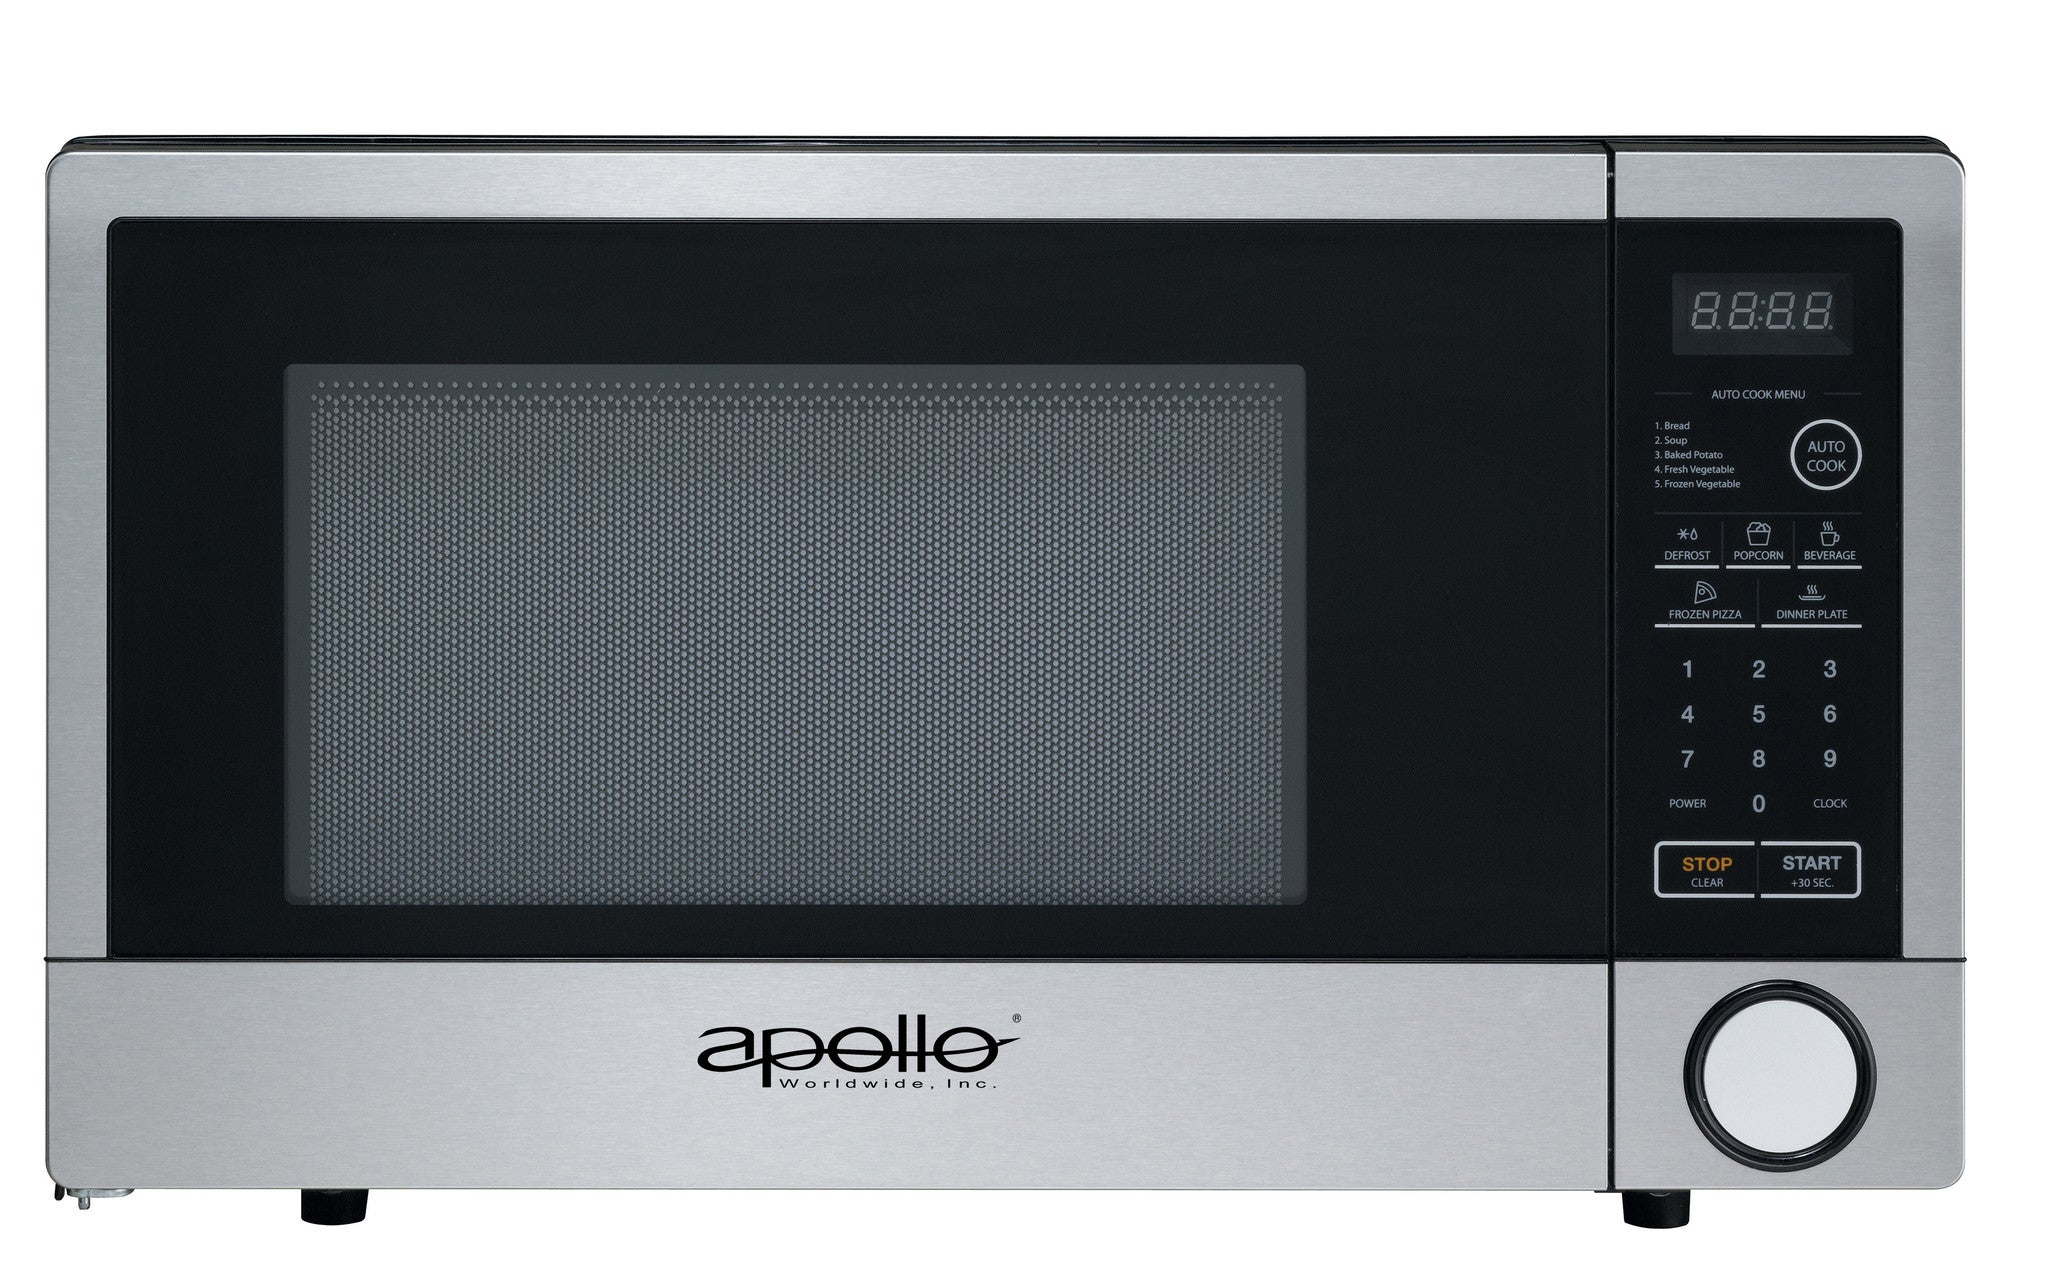 Apollo Microwave Oven: AD-10-CTS/B, 1.1 cu.ft., 1000 W.